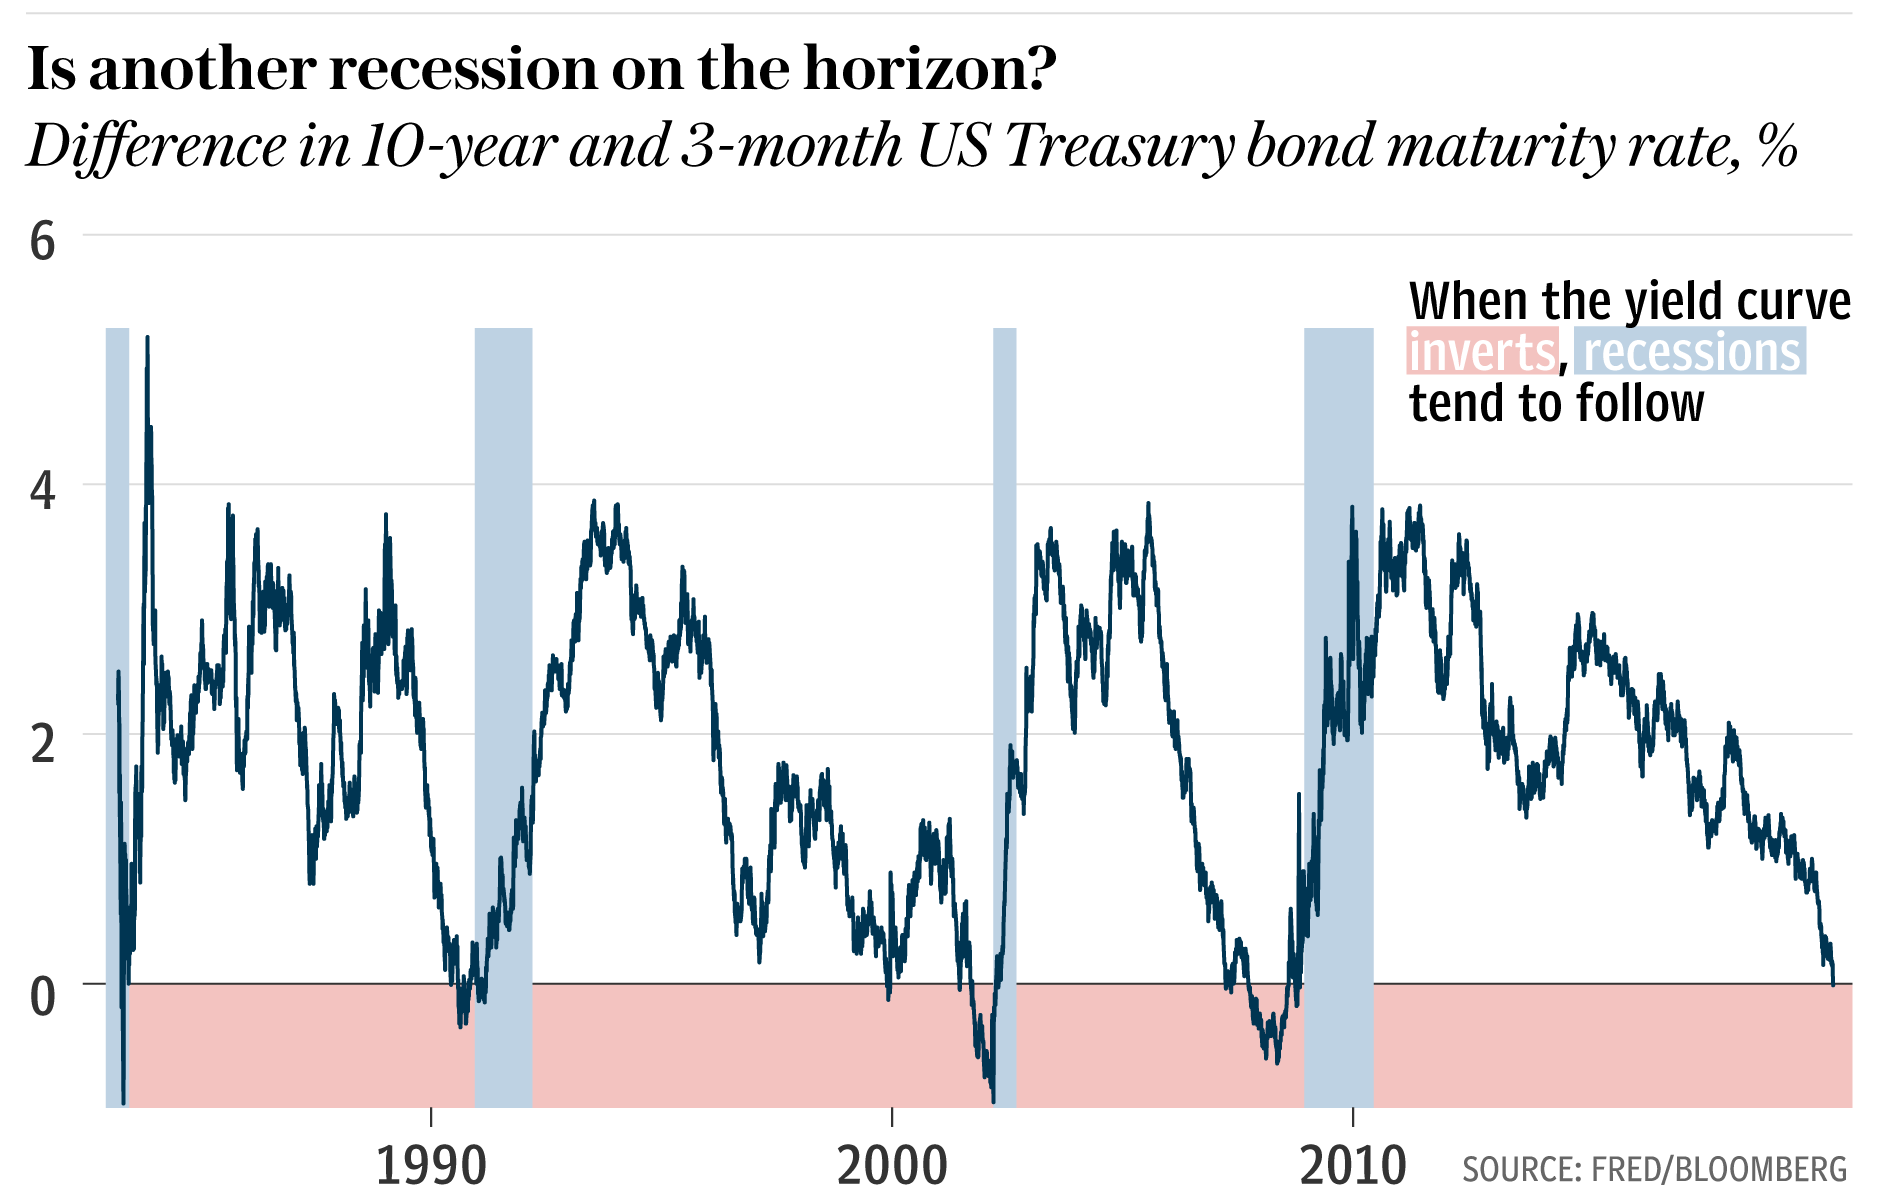 A graph showing the differnce in 10 year and three month US Treasury Bond maturity rate